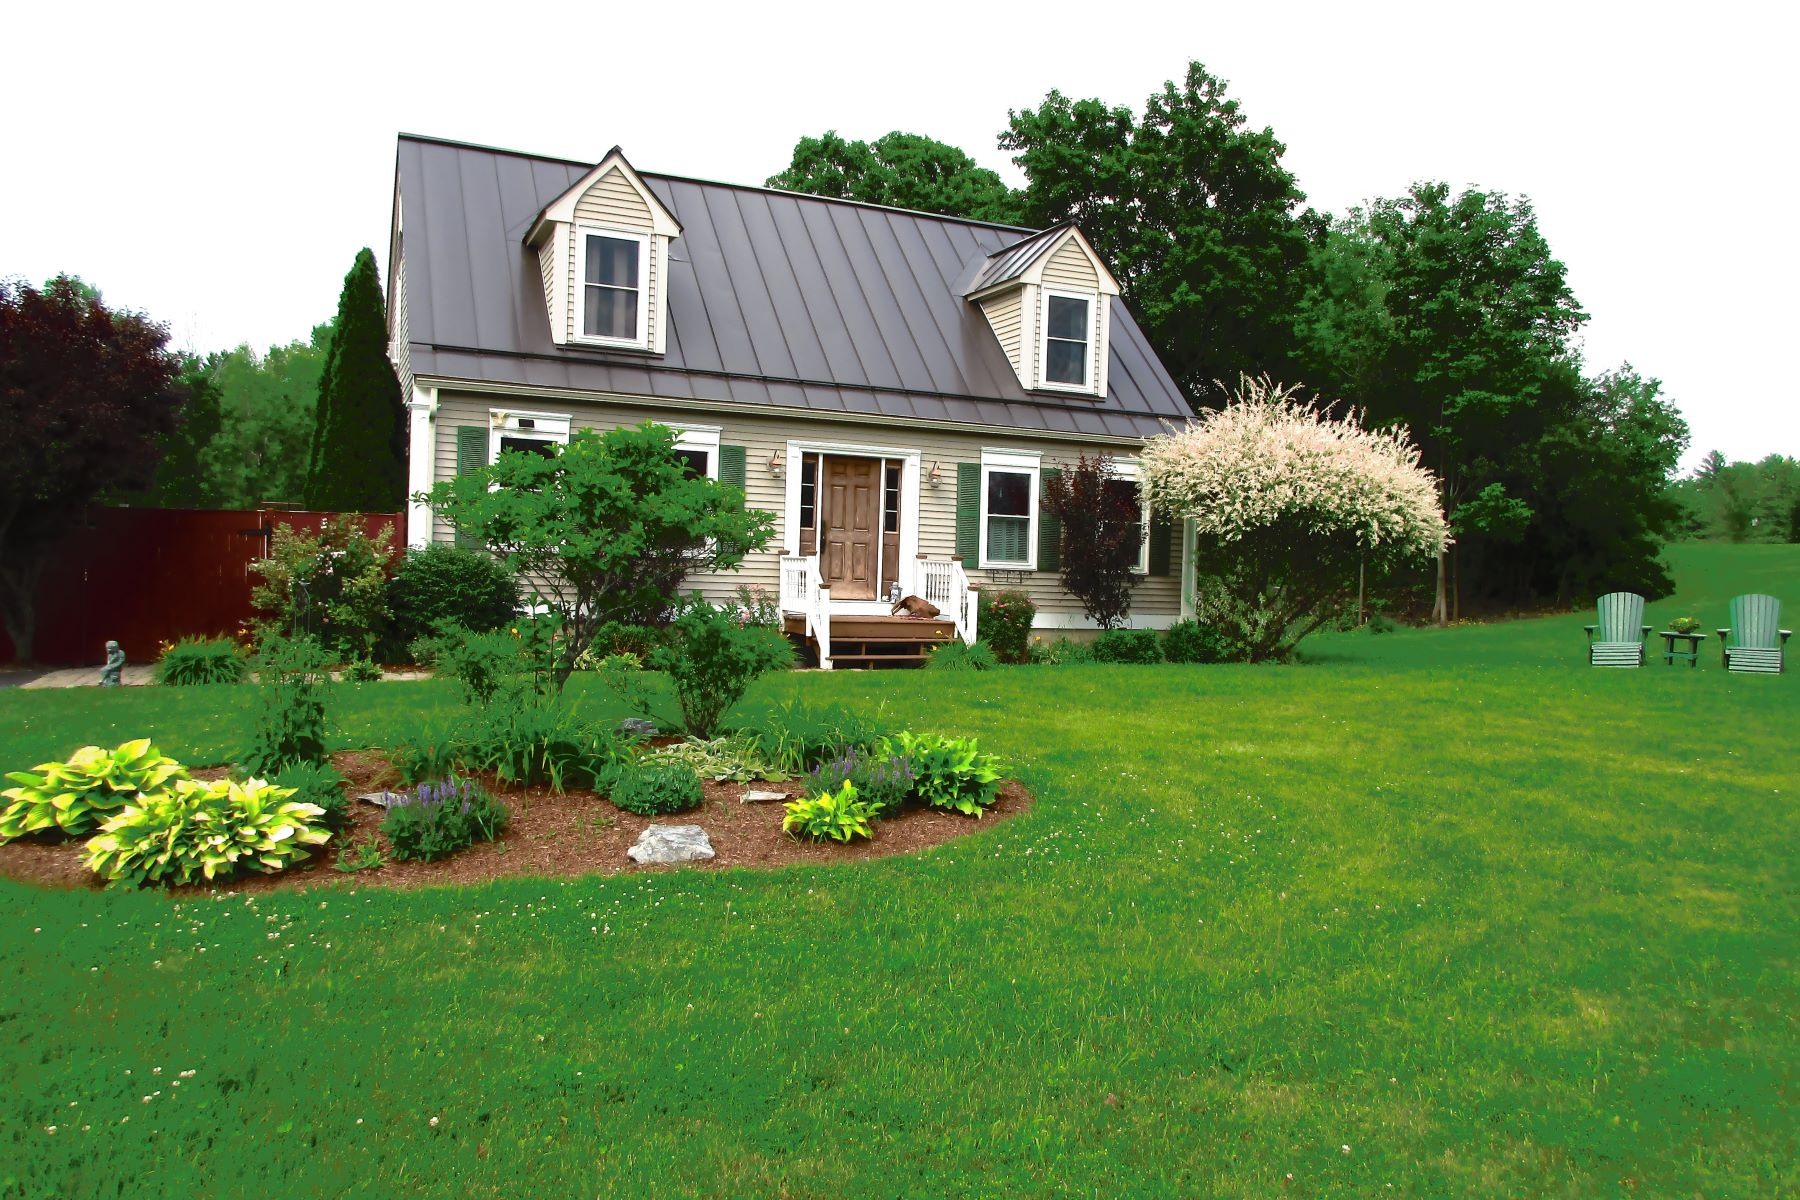 Single Family Homes for Sale at Cape-style home in move-in condition 35 Deerfield Ln Middlebury, Vermont 05753 United States